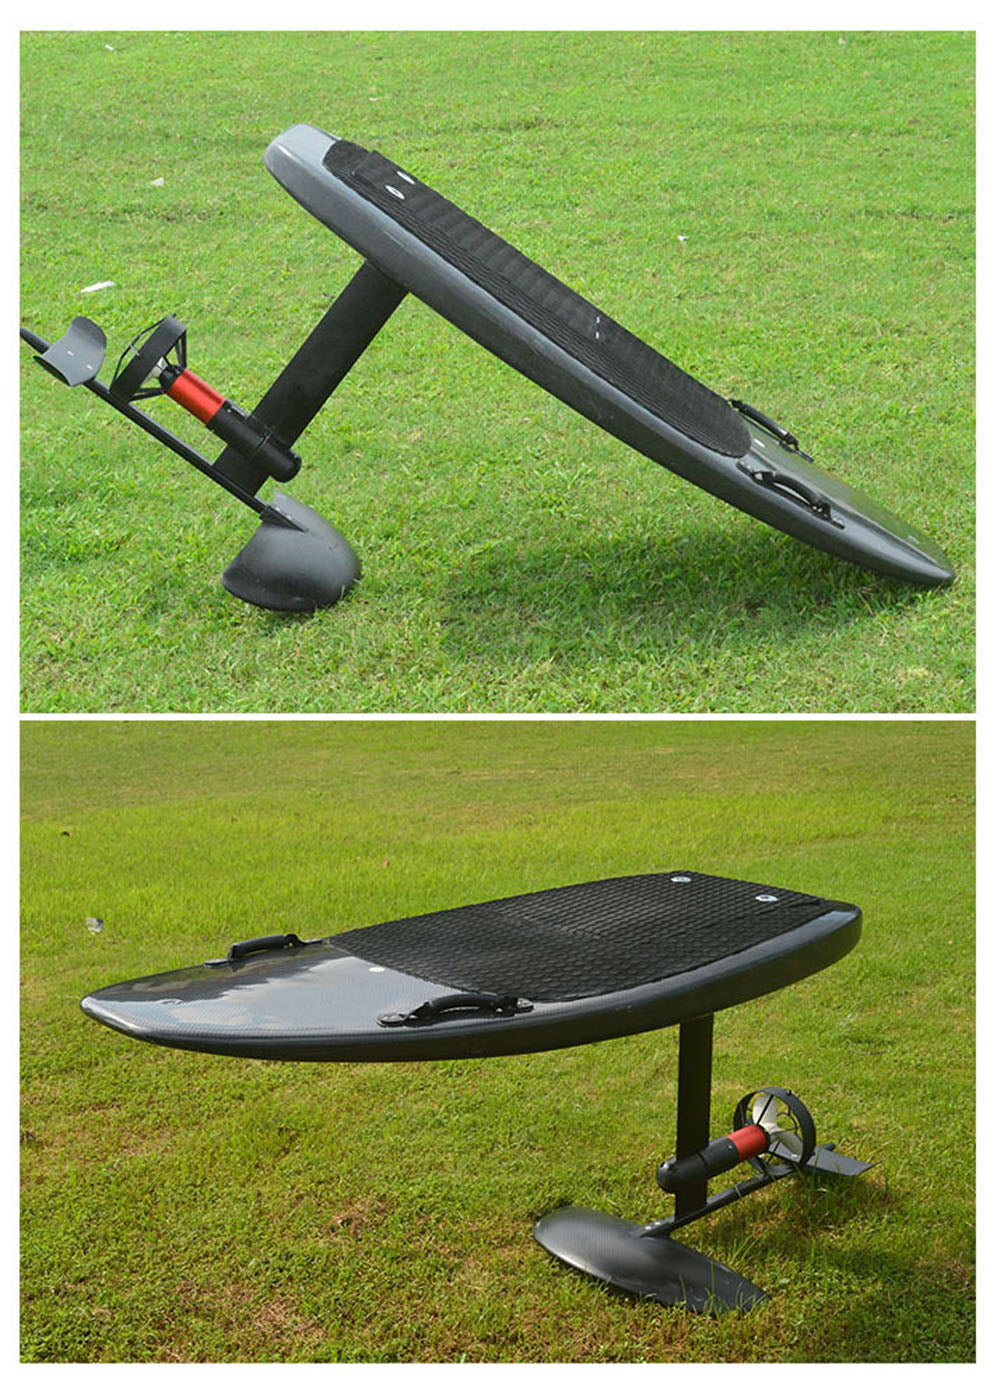 """Electric hydrofoil is similar to surfboards and is a kind of water sports products. In the past, the hydrofoil was lifted by kite or human paddling. The biggest feature of the electric hydrofoil is its own power system. The hydrofoil can be powered by a handheld remote control. It can move at a maximum speed of 40 kilometers per hour. When a certain speed is reached, the surfboard will automatically rise, and keep balance. It is a brand new marine sports product.</strong></div> <div style=""""padding-left: 30px;""""><strong>The appearance is simple, the board body is made of carbon fiber structure, and the line is full. It does not require super-high surfing skills, and beginners can easily master it. There is no need to use a boat to tow, as long as there is water, you can play~ Different from all water sports you have seen before, it can let you free yourself and enjoy yourself!"""